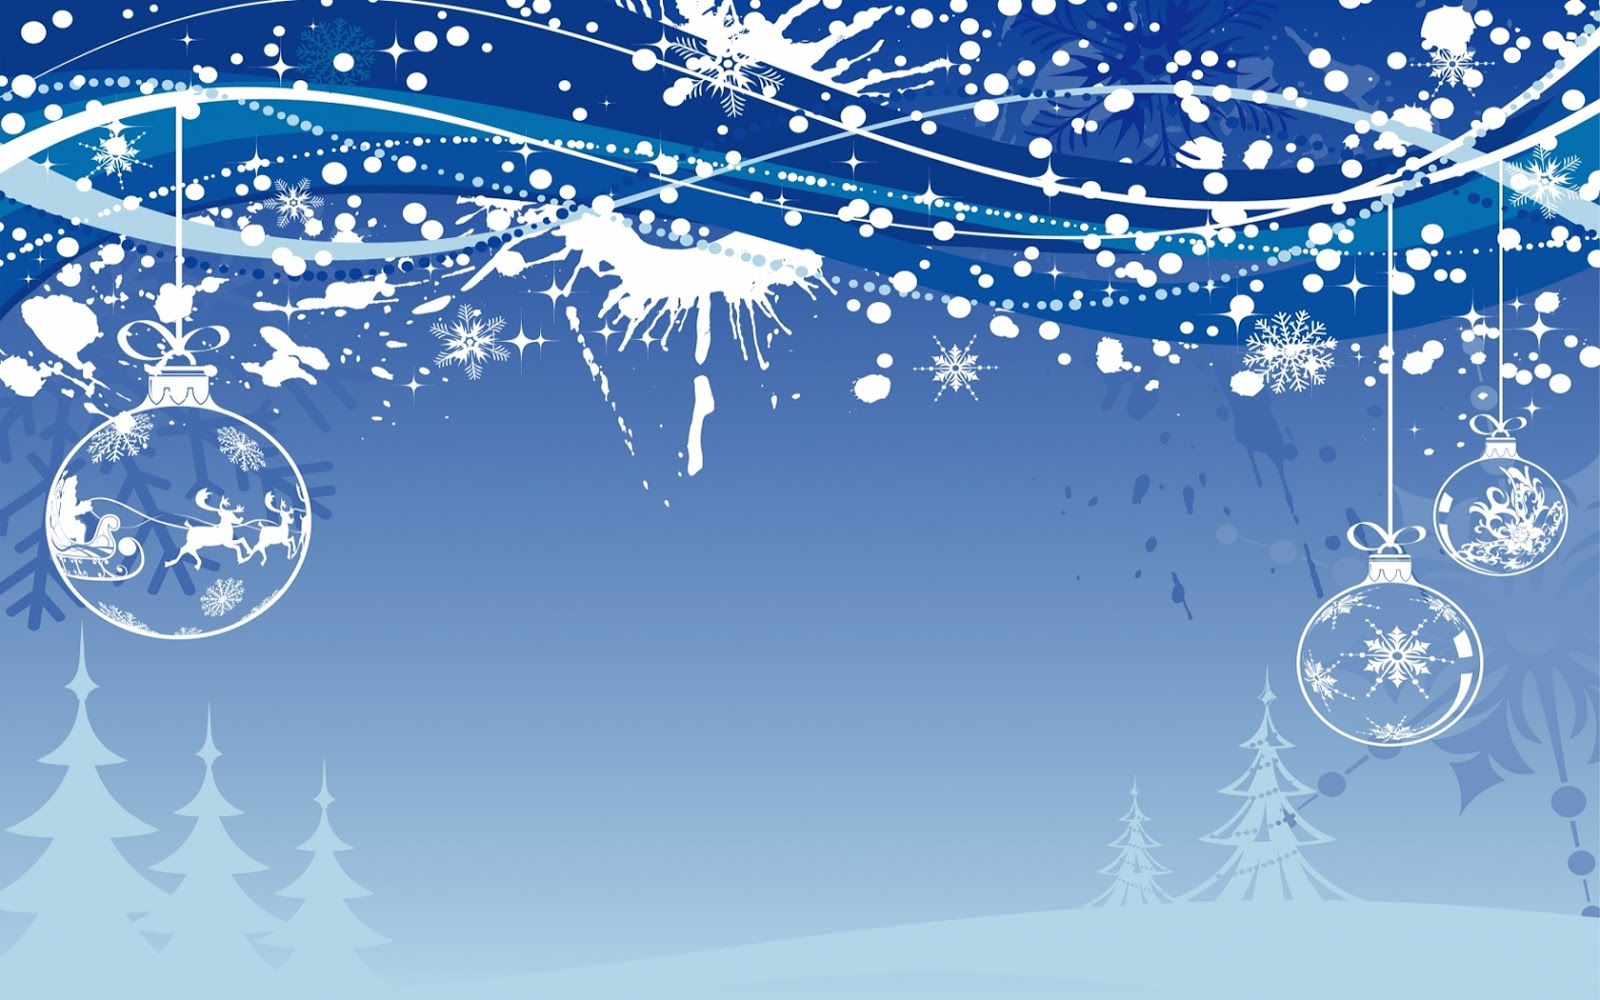 merry christmas wallpaper winter - photo #19